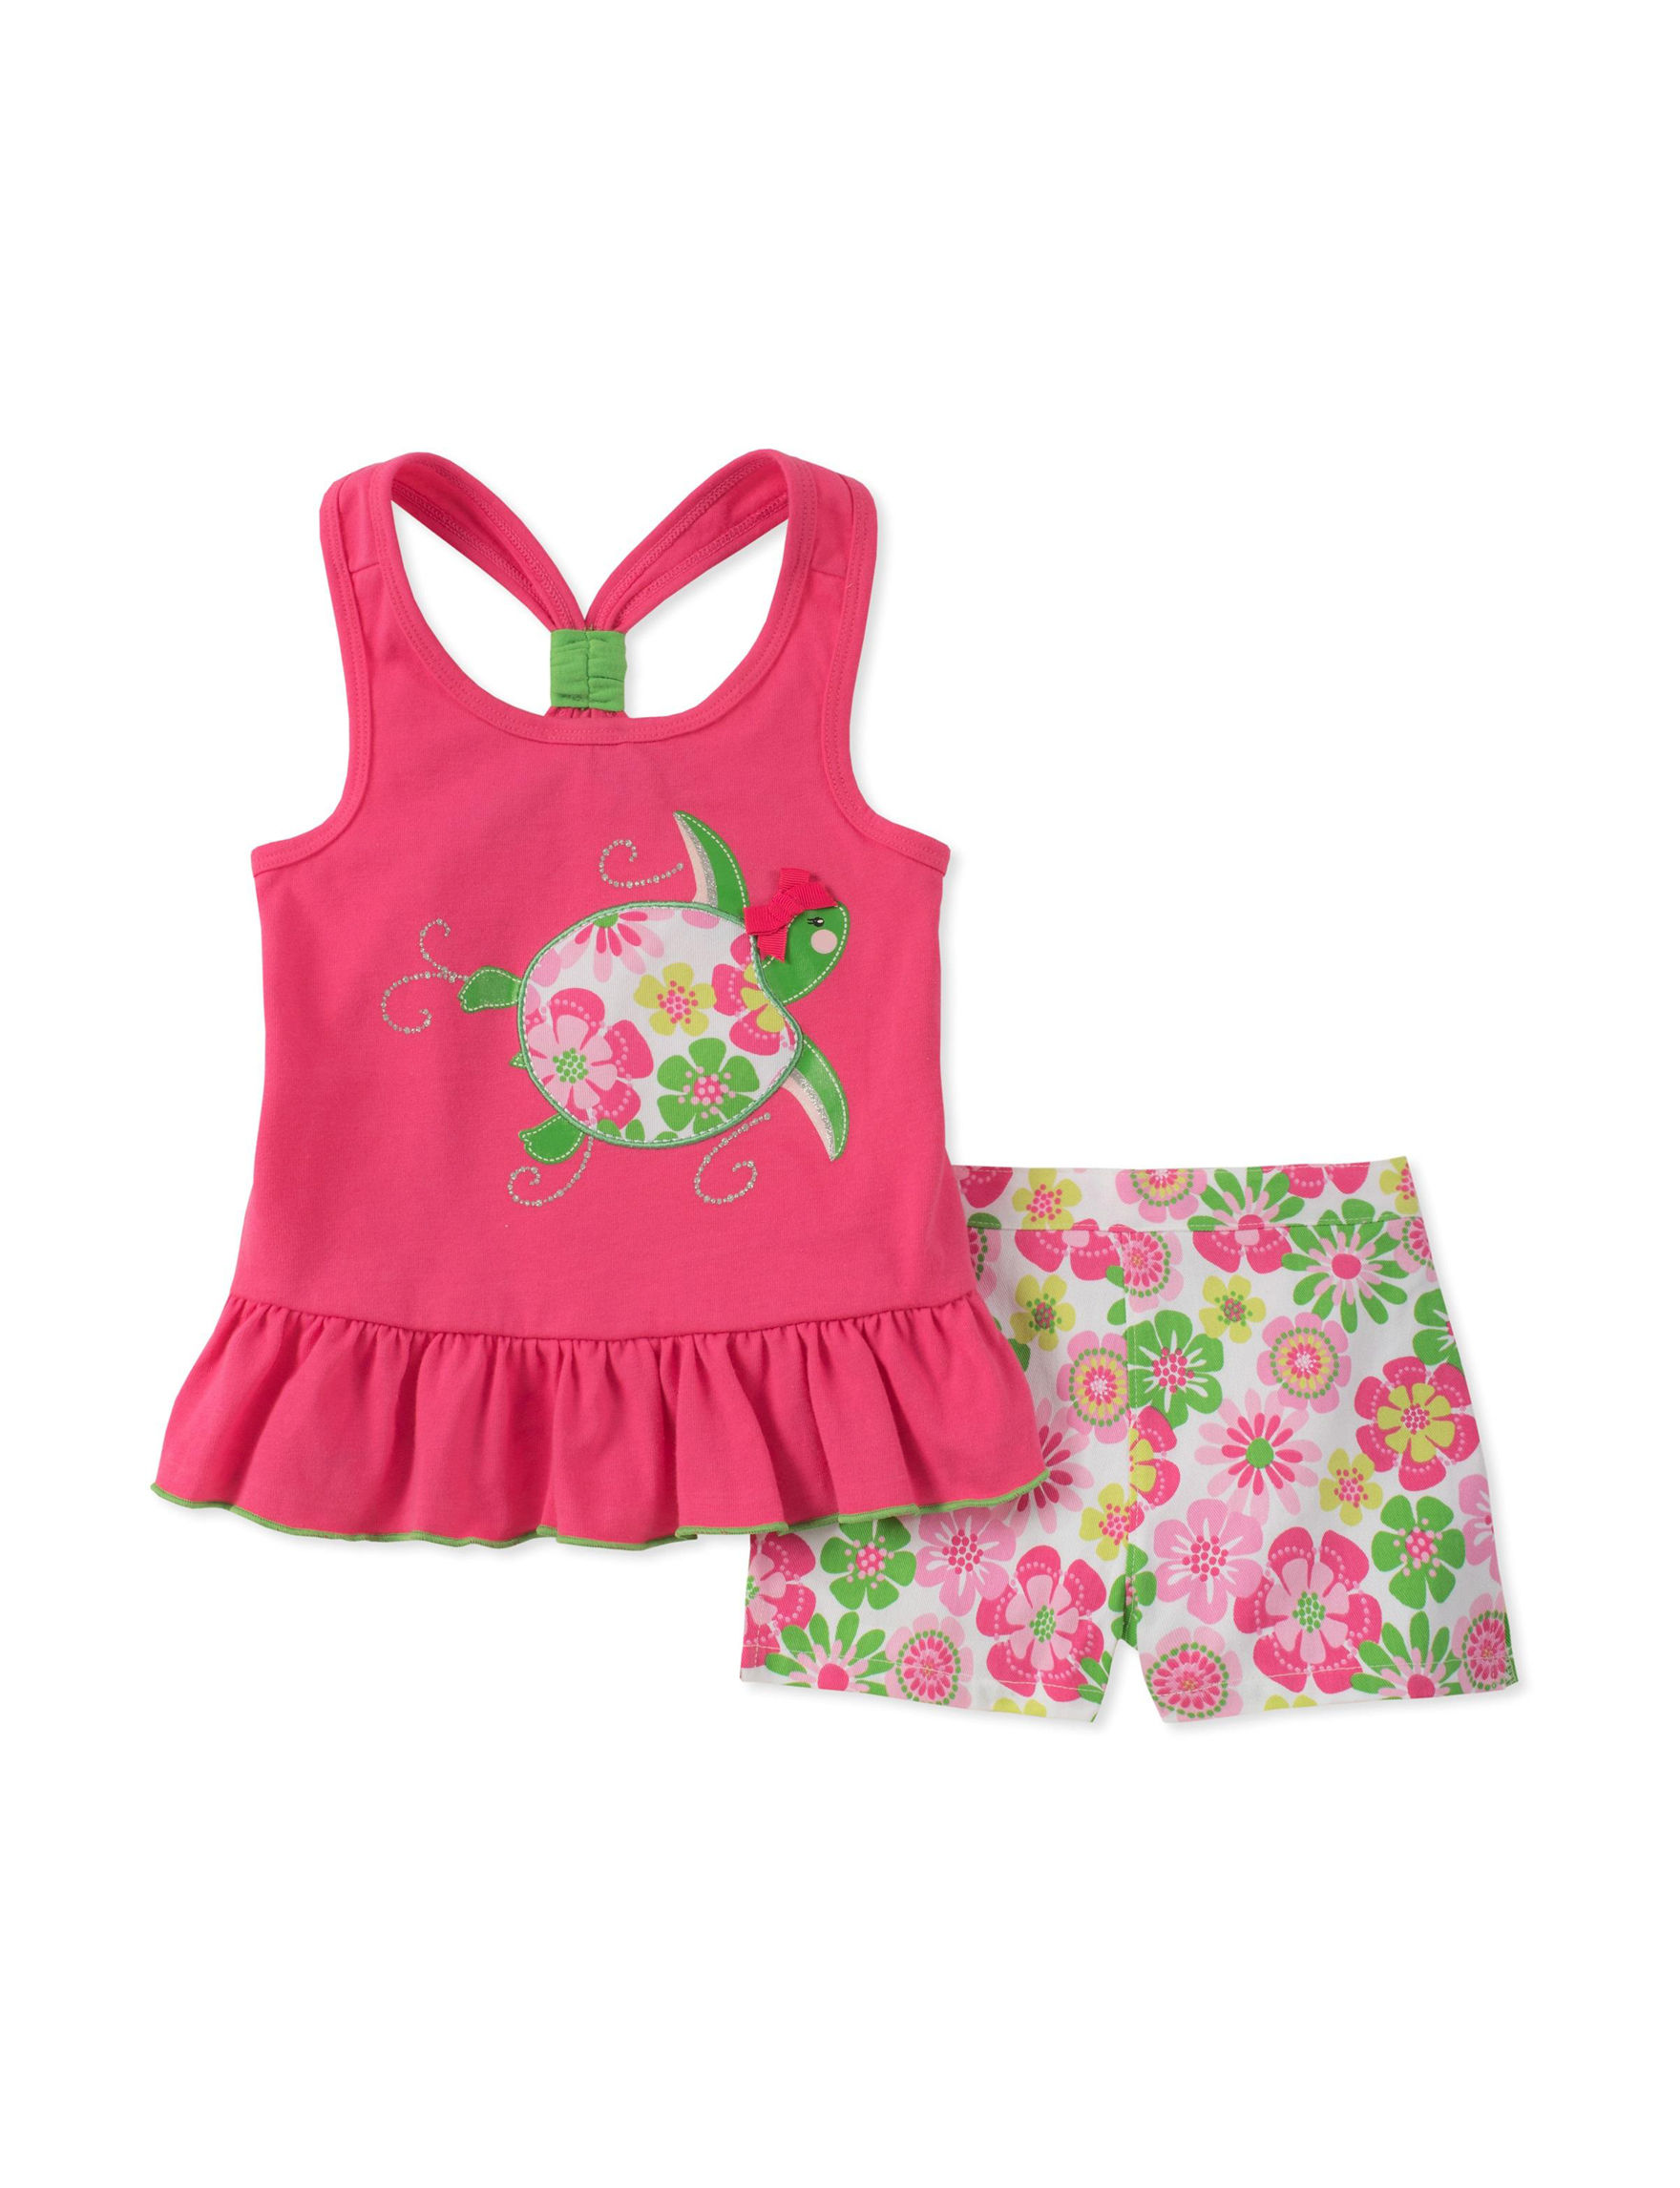 Kids Headquarters Pink Floral